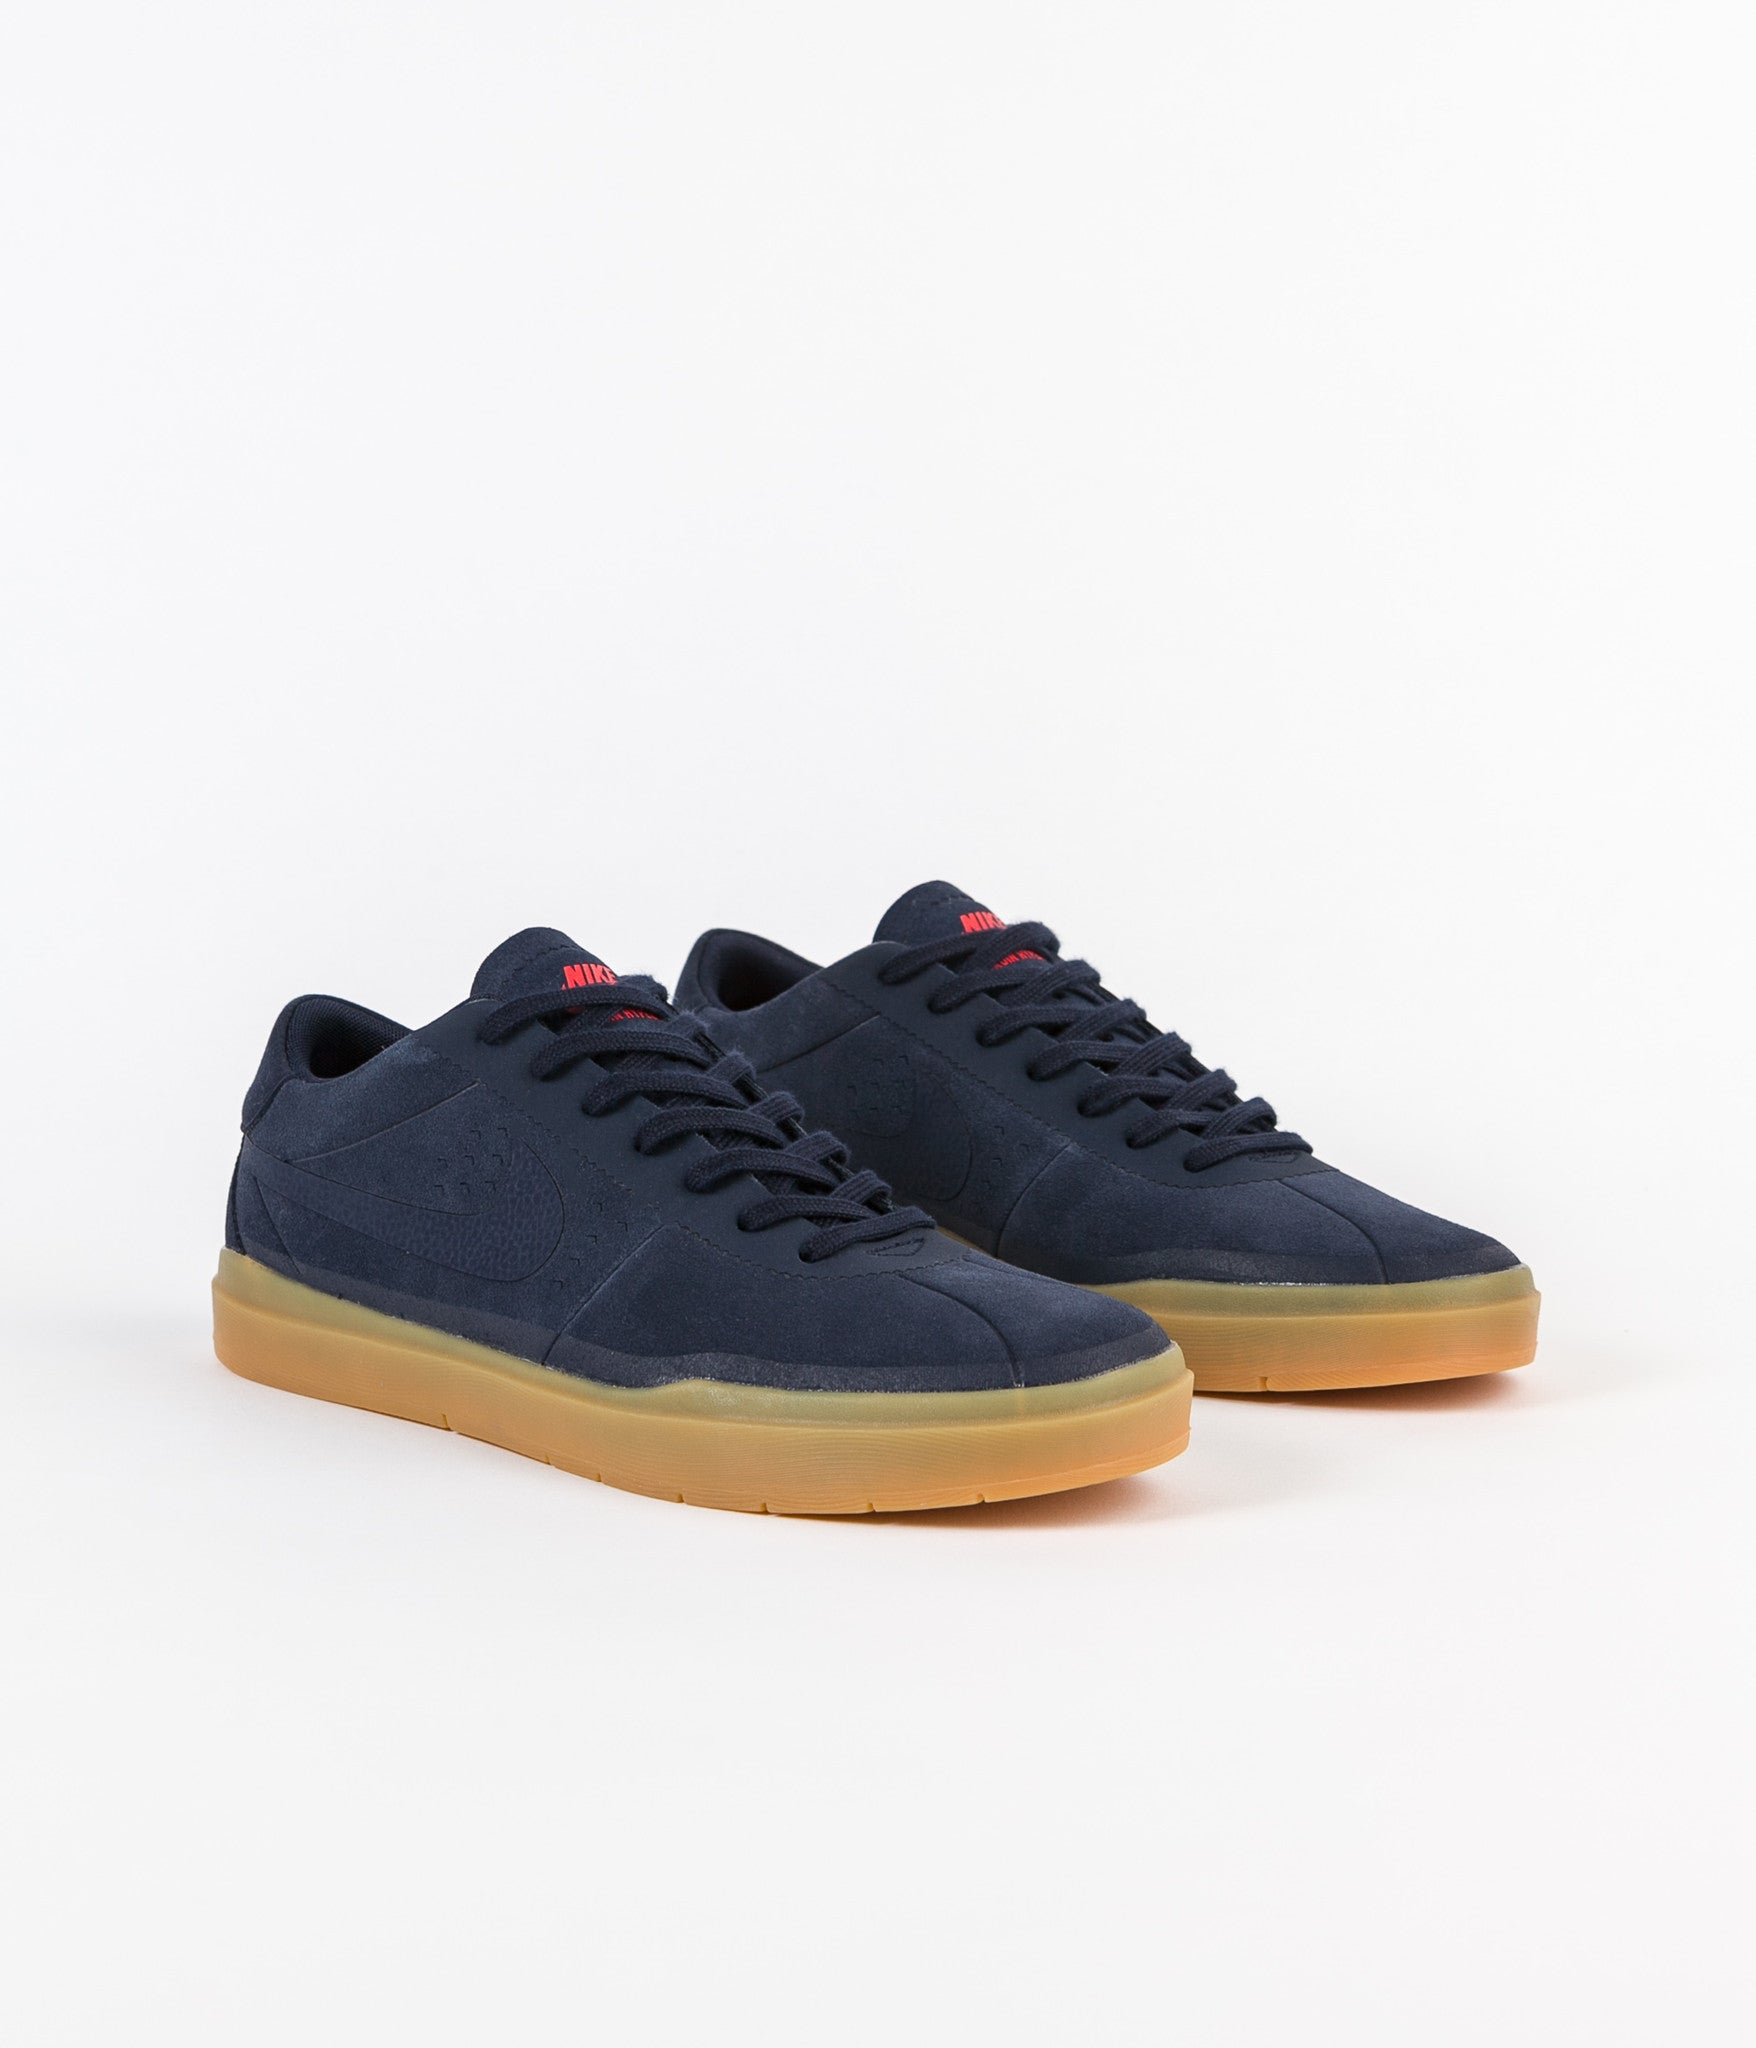 nike sb bruin hyperfeel shoes obsidian obsidian gum. Black Bedroom Furniture Sets. Home Design Ideas